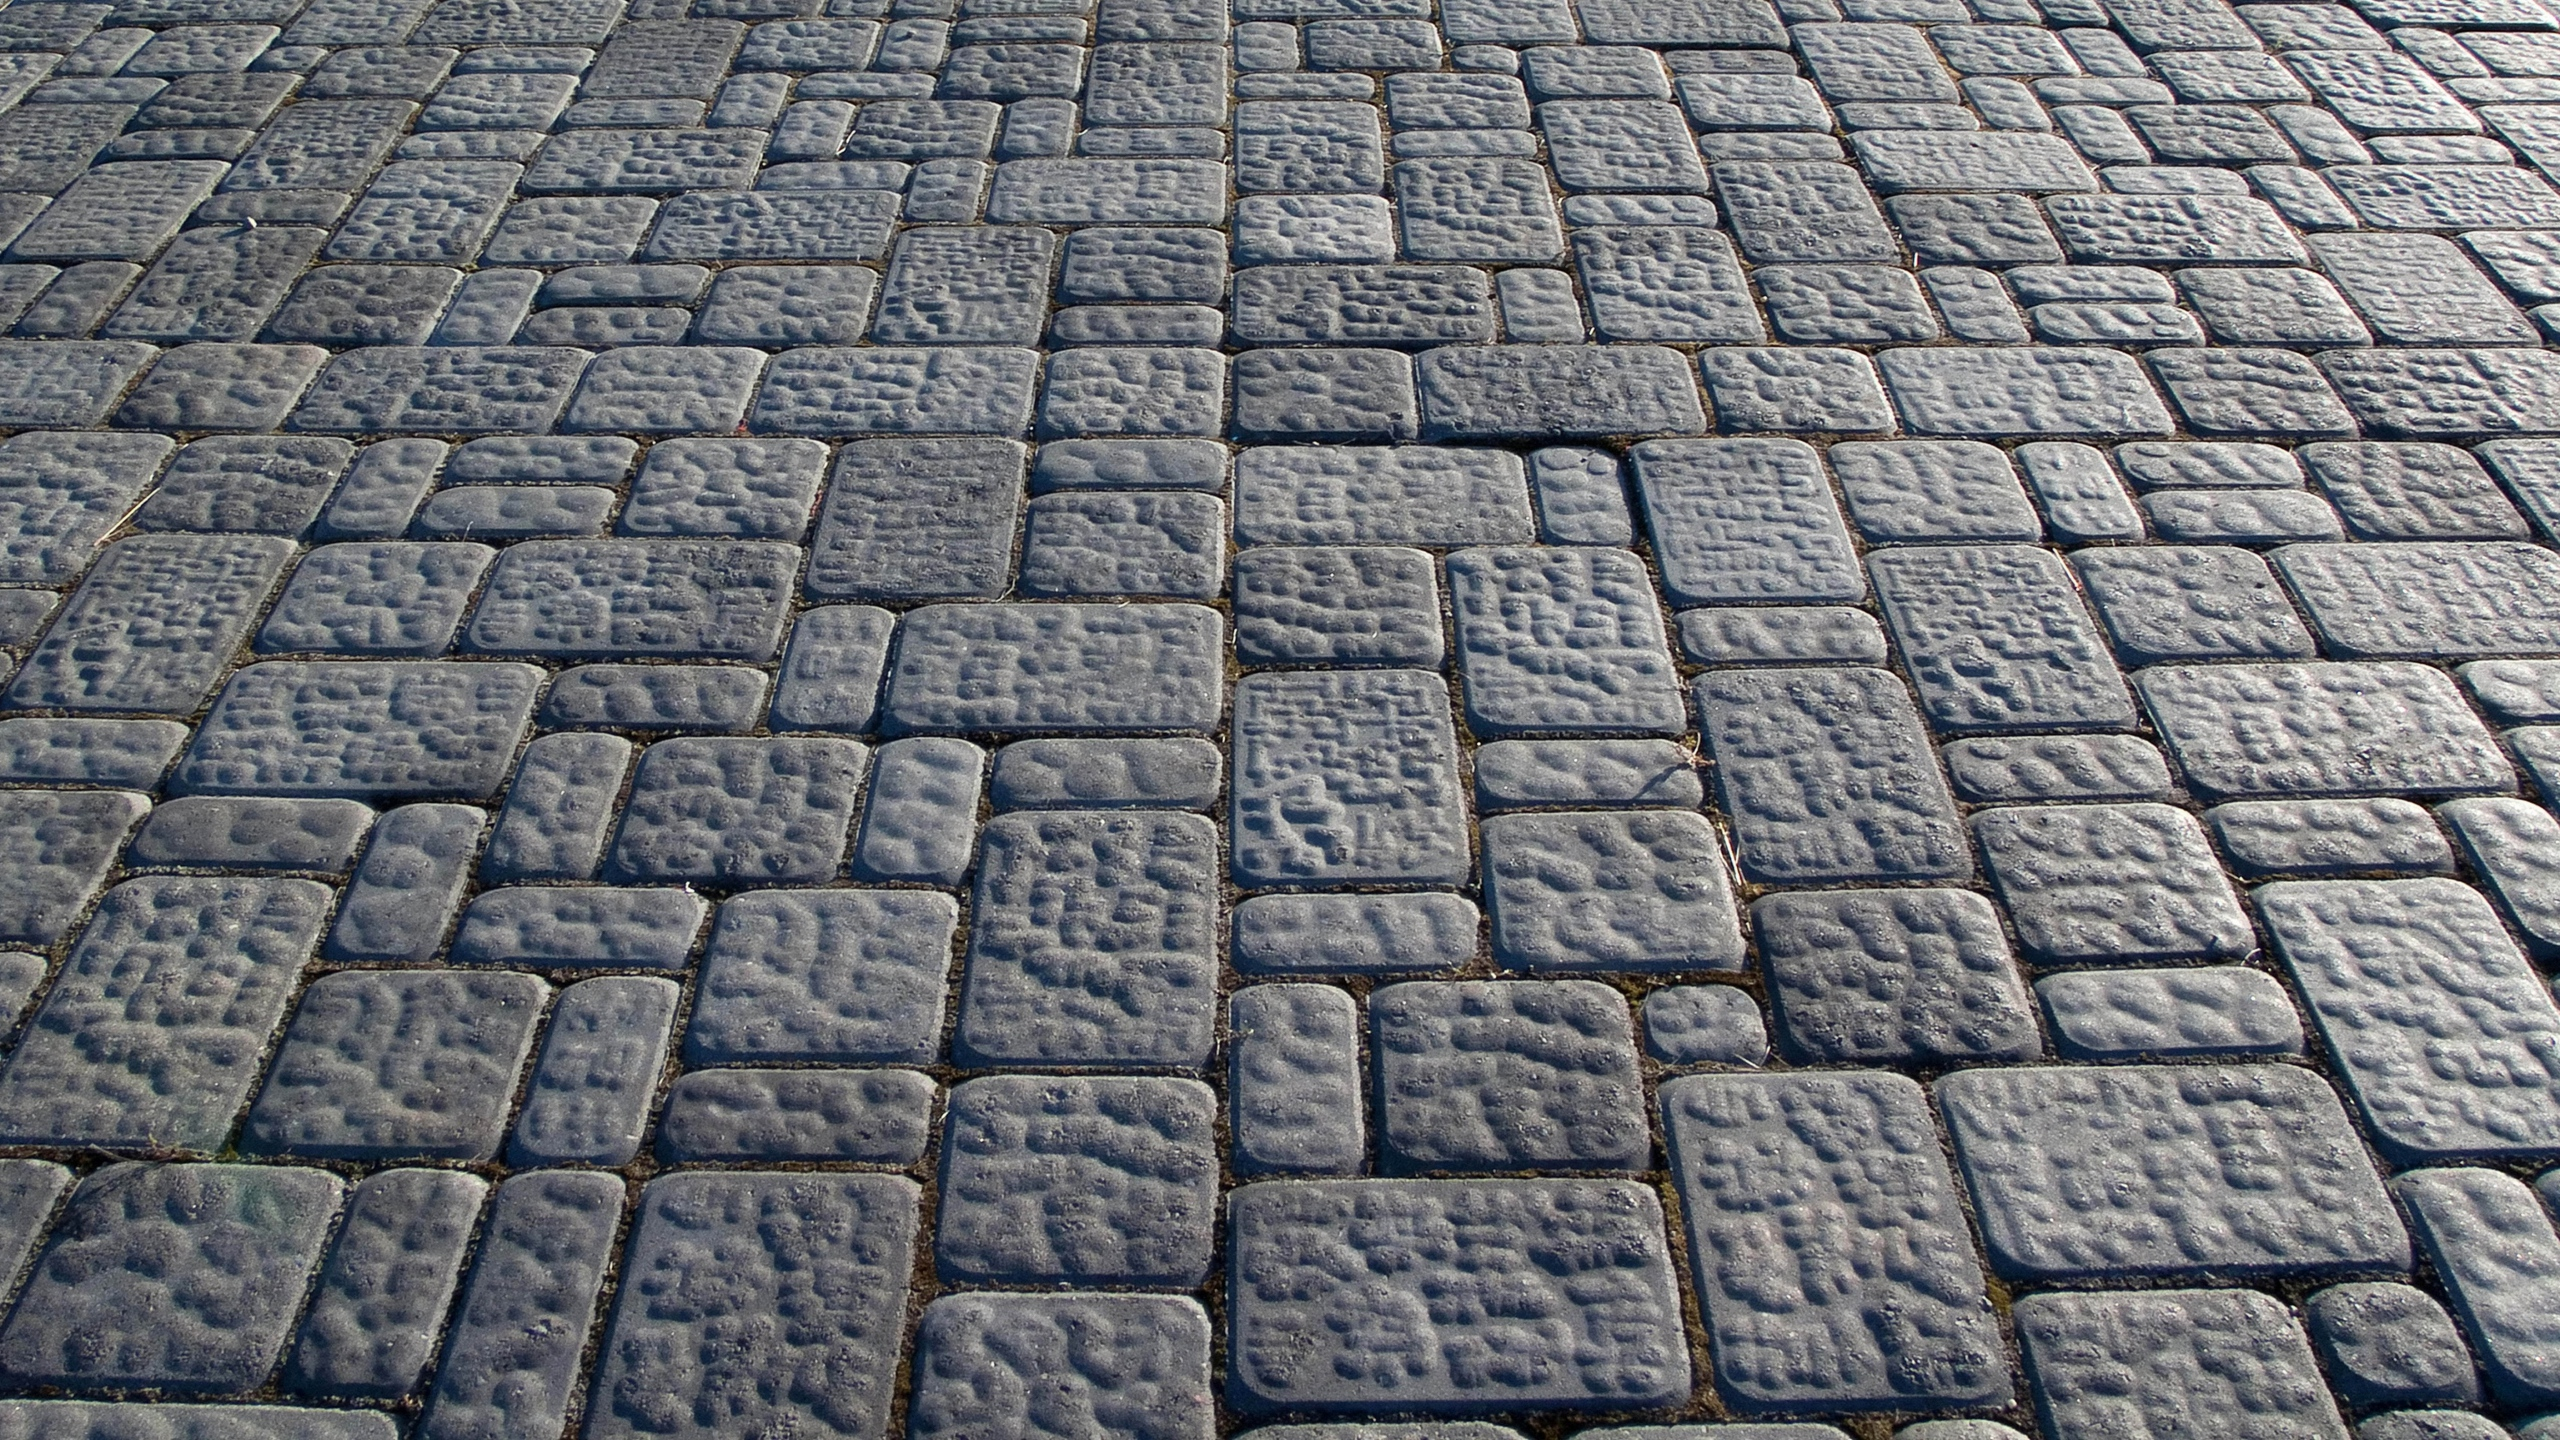 2560x1440 Wallpaper stones, paving, pavement